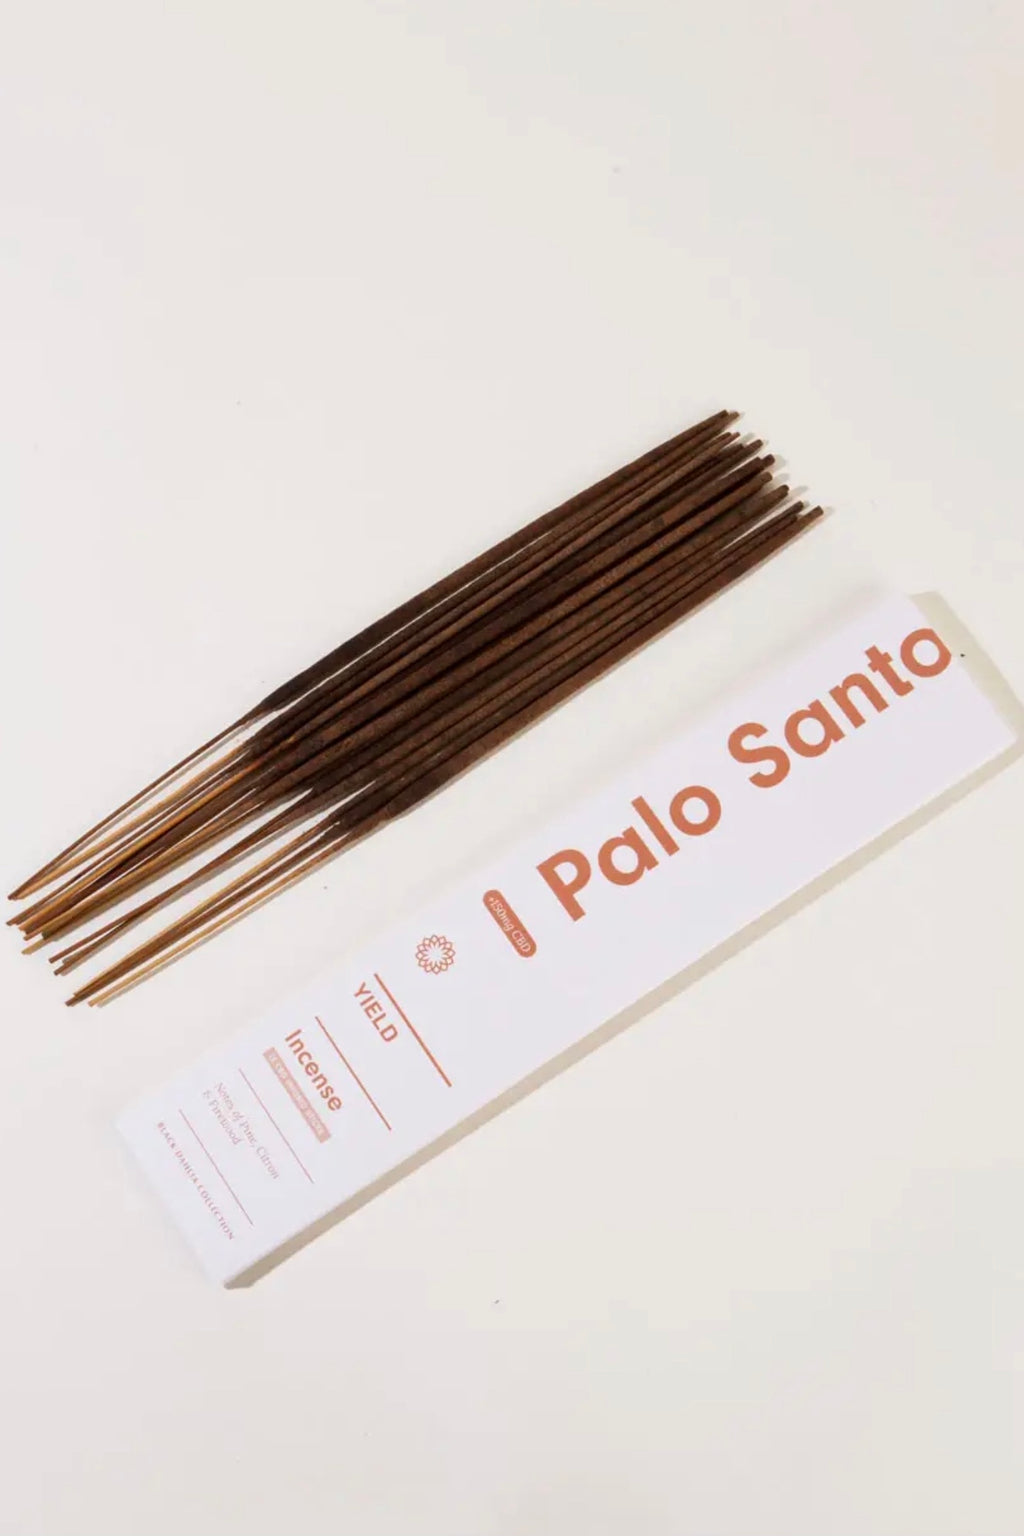 Artisanal Incense